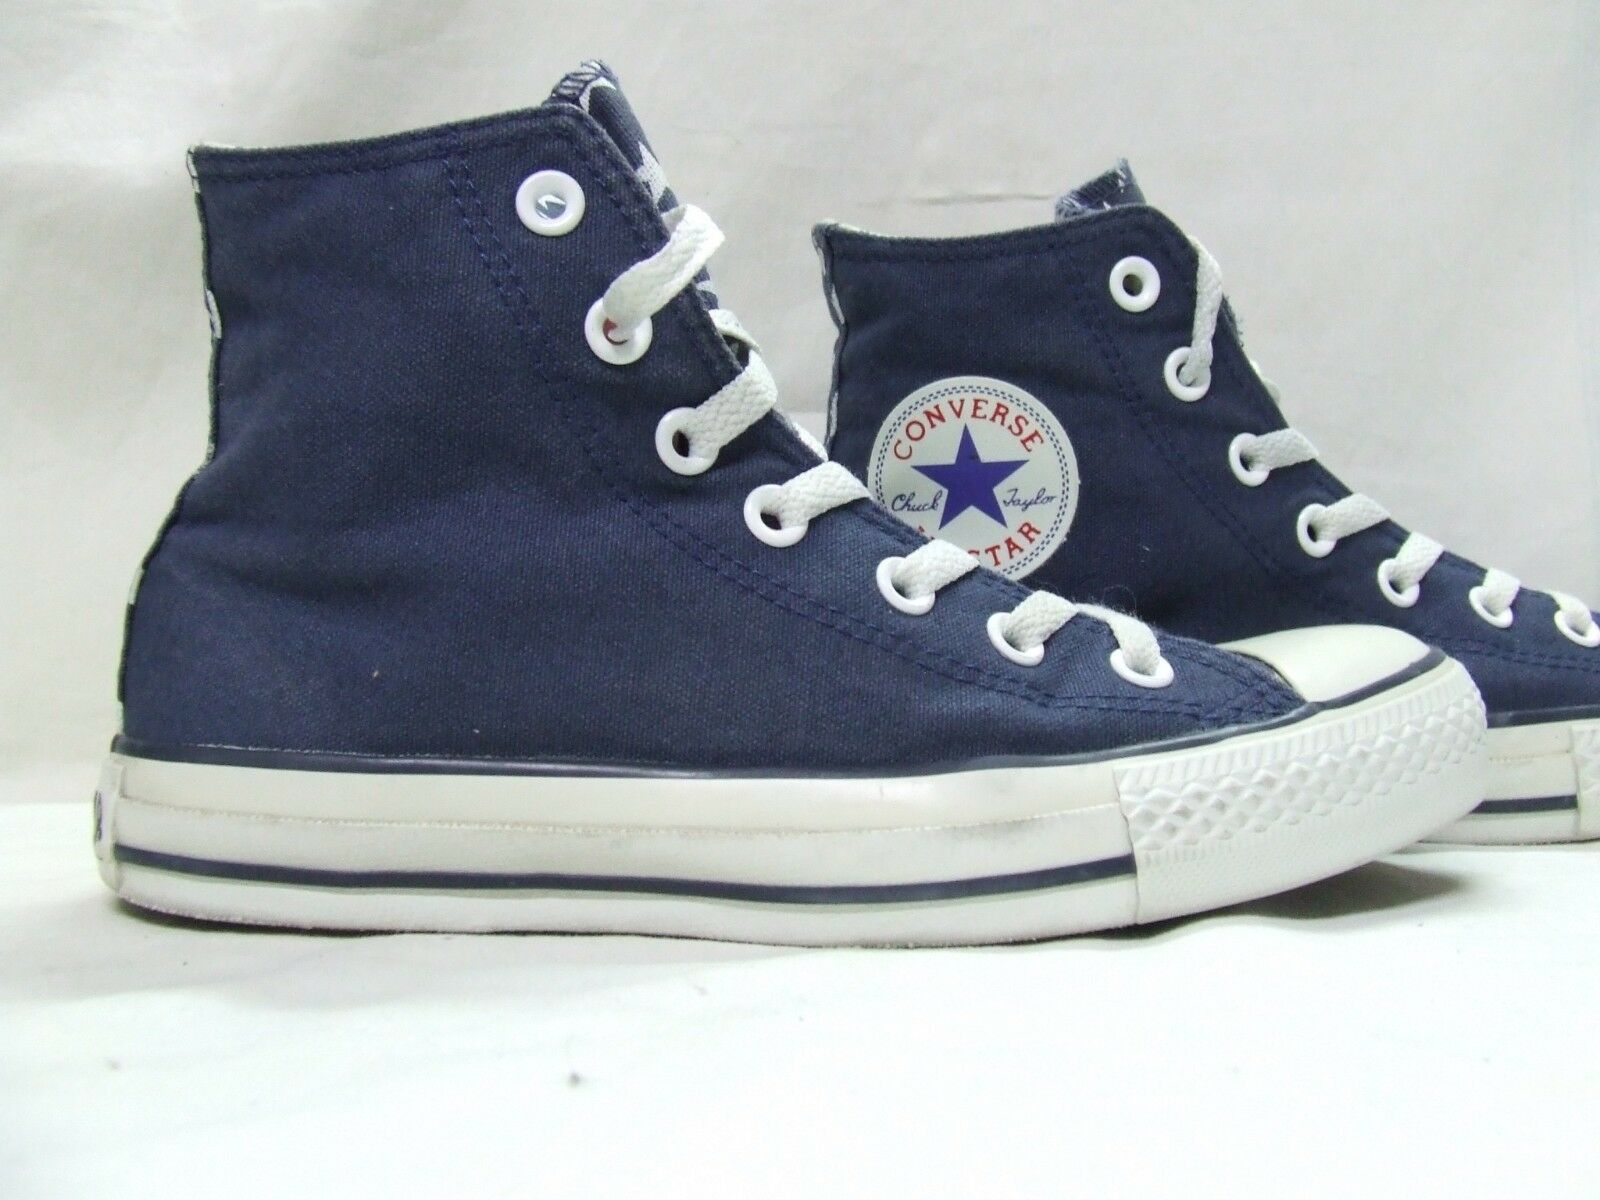 SHOES MAN WOMAN VINTAGE CONVERSE ALL STAR size 5 - 37,5 (030)